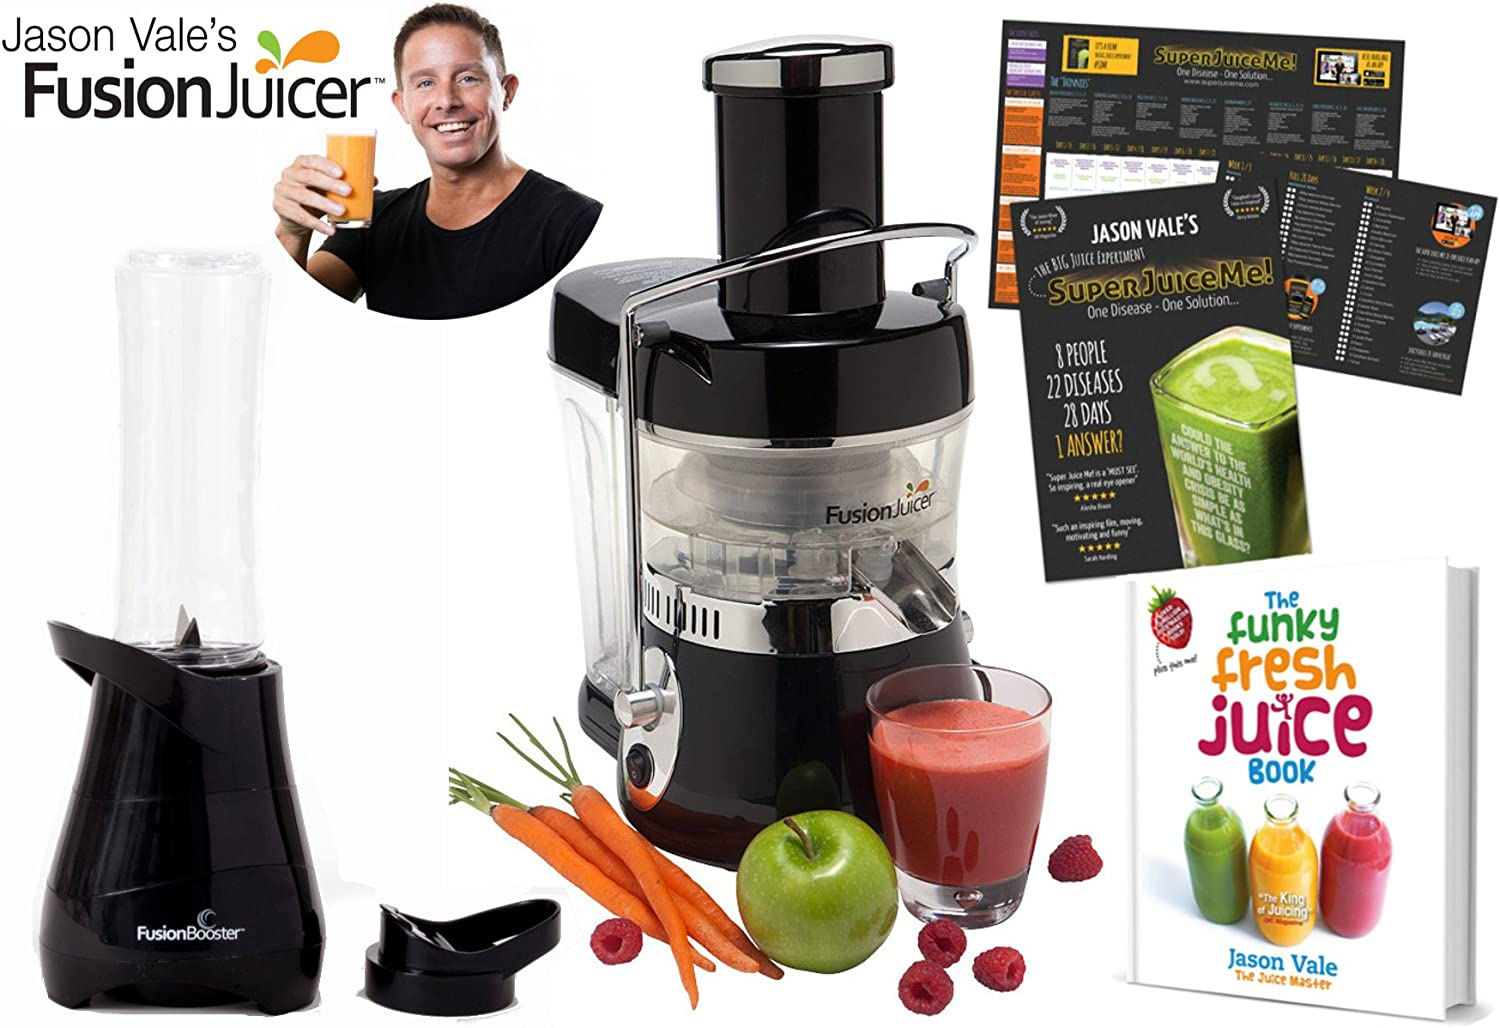 Jason Vale Fusion Juicer and Book